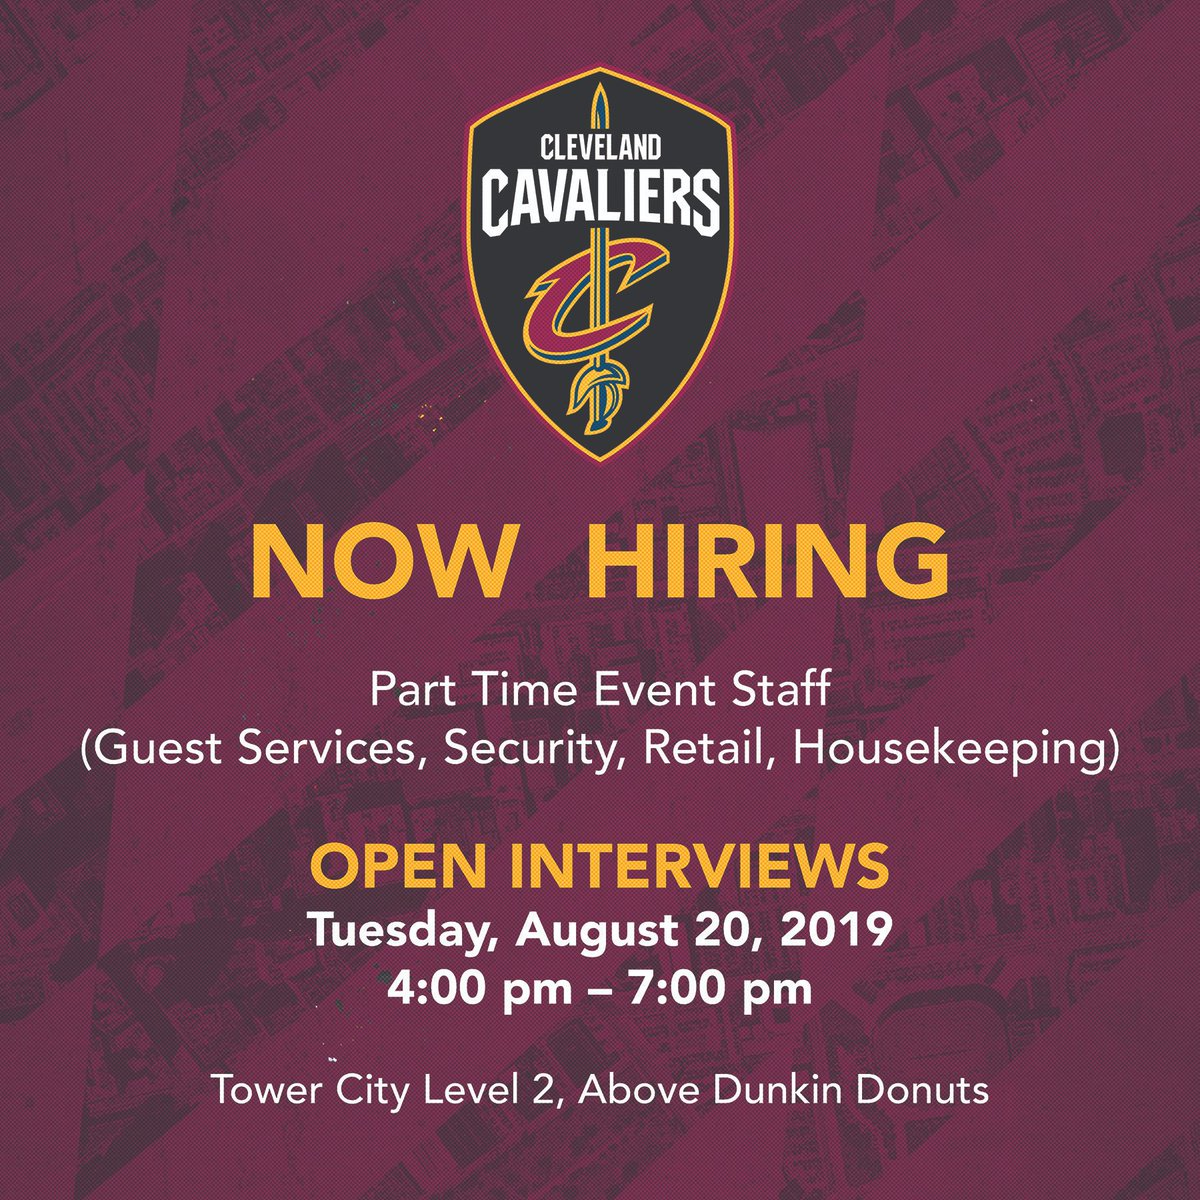 Now hiring! Friendly reminder: open interviews for part time event staff will take place tomorrow, August 20th from 4:00 p.m. - 7:00 p.m. at Tower City Center. See you there 😊